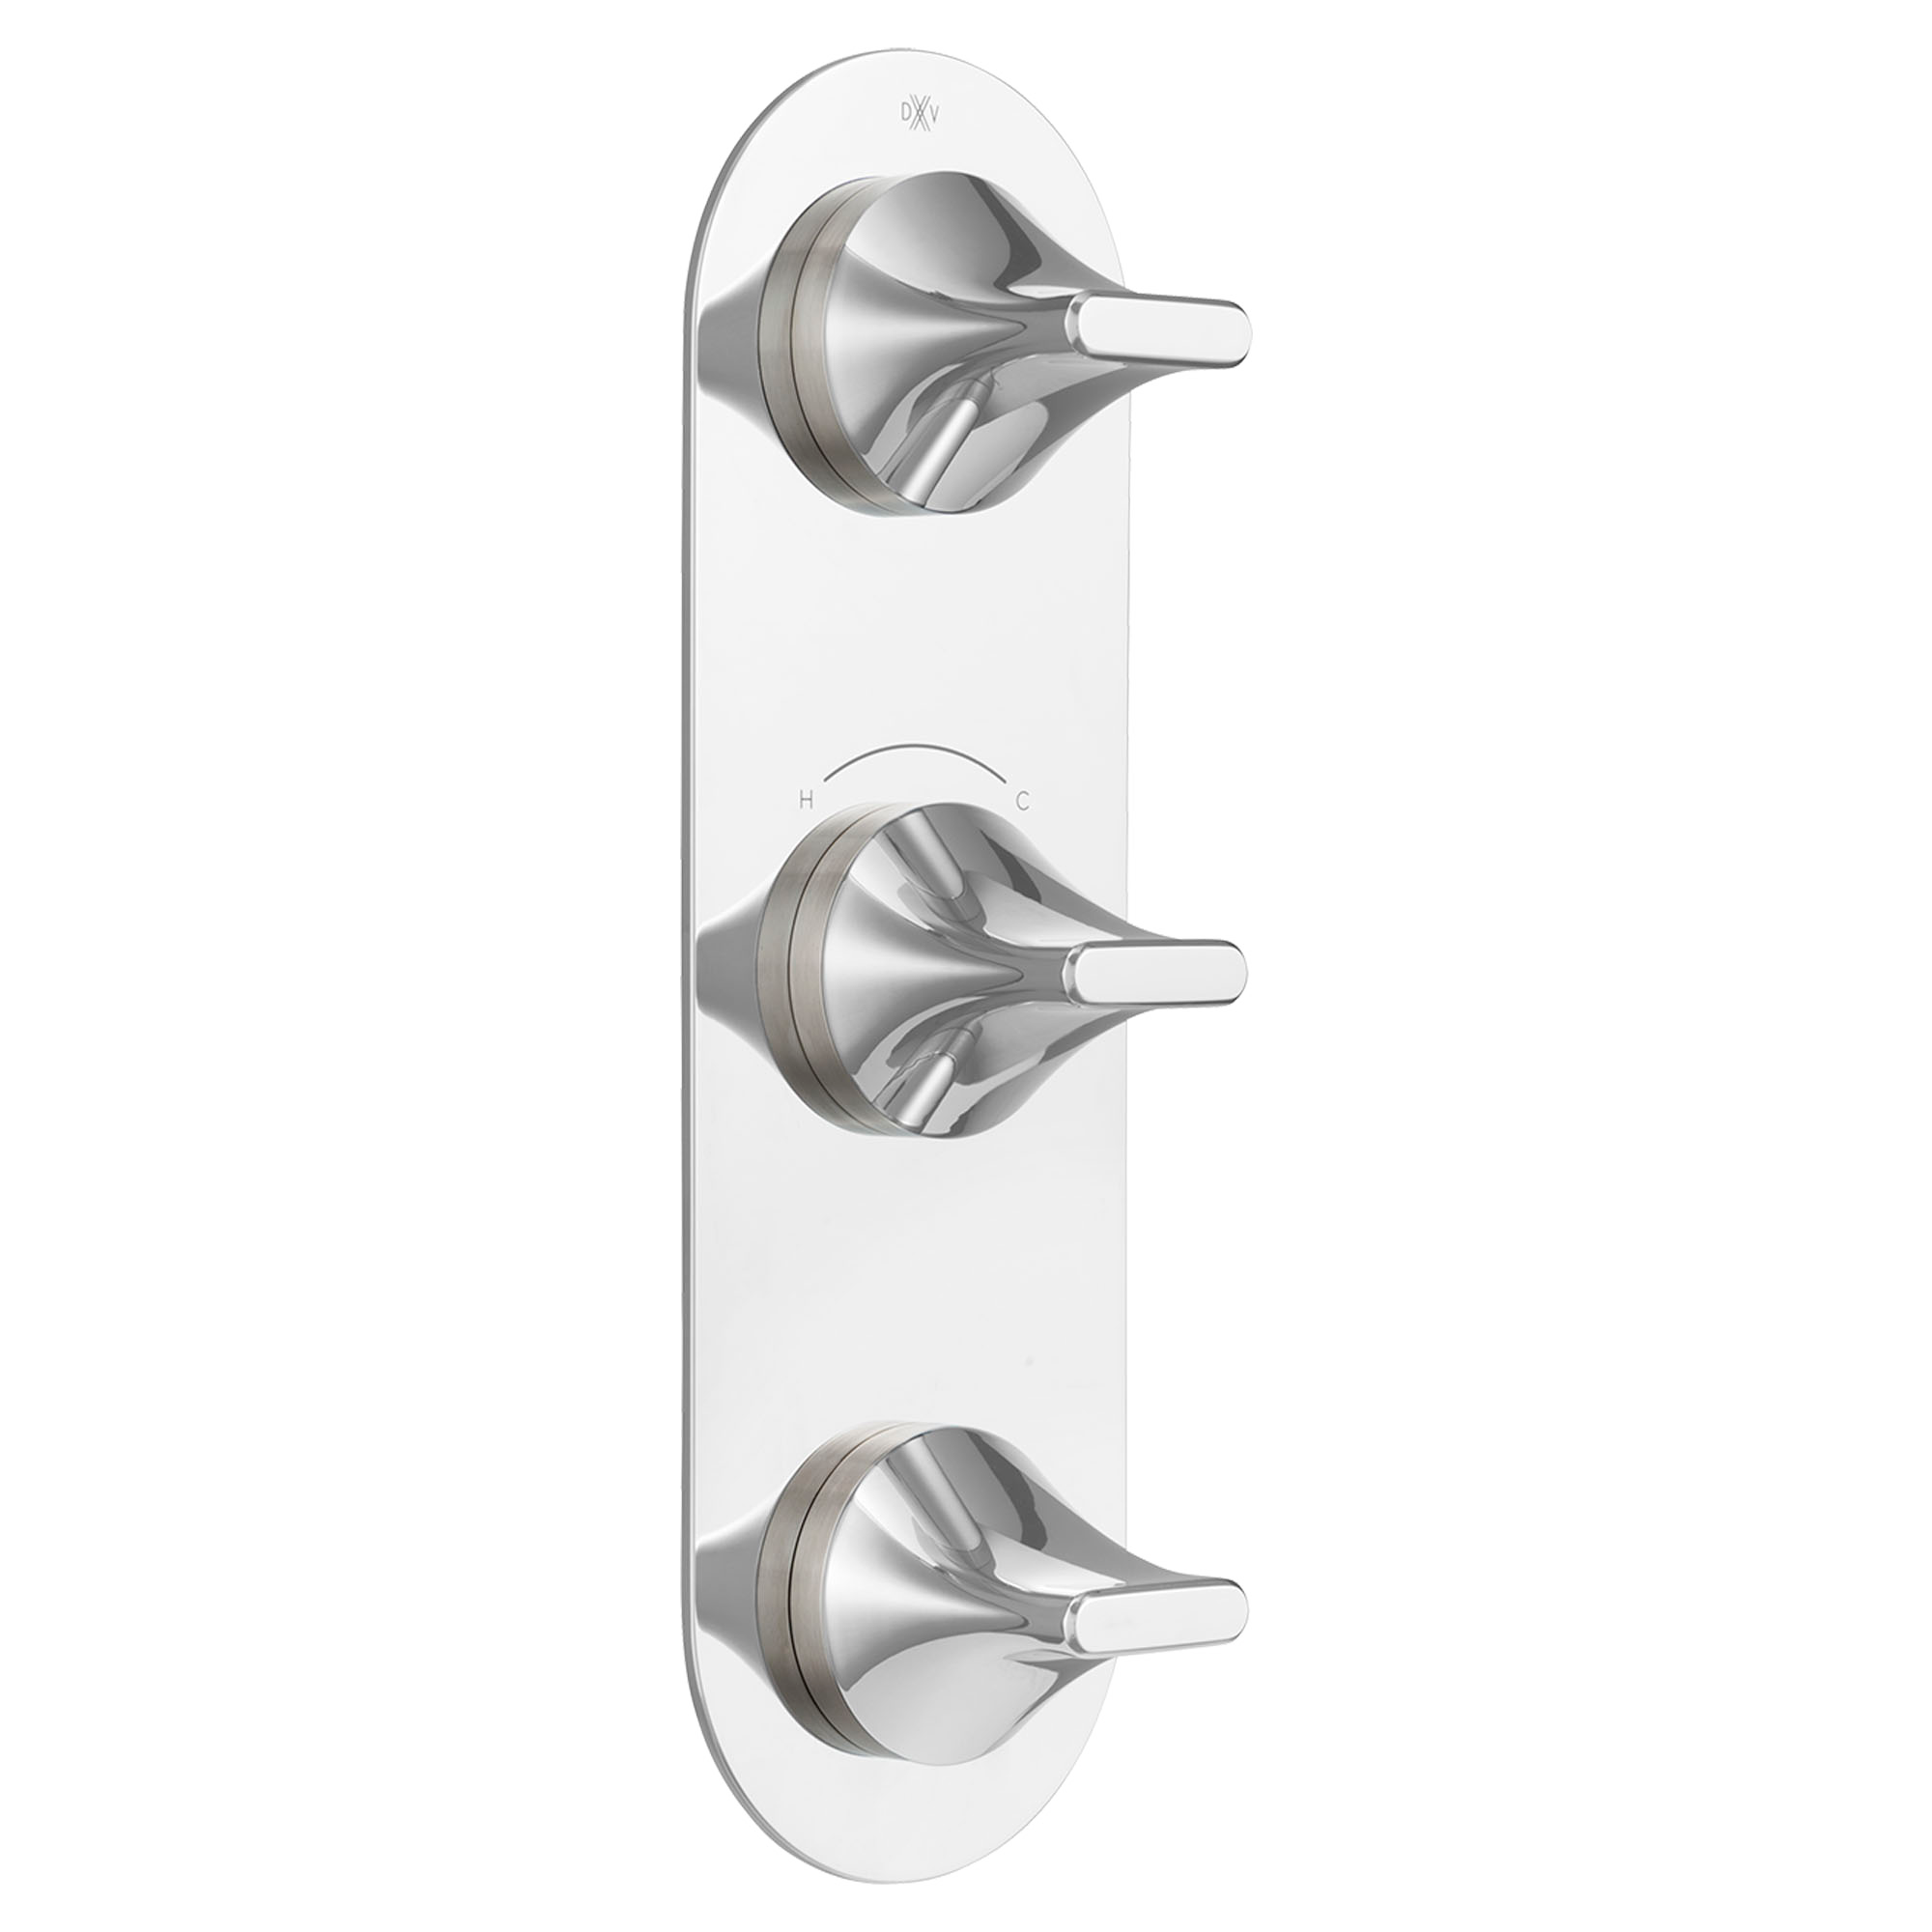 DXV Modulus 3-Handle Thermostatic Valve Trim | DXV